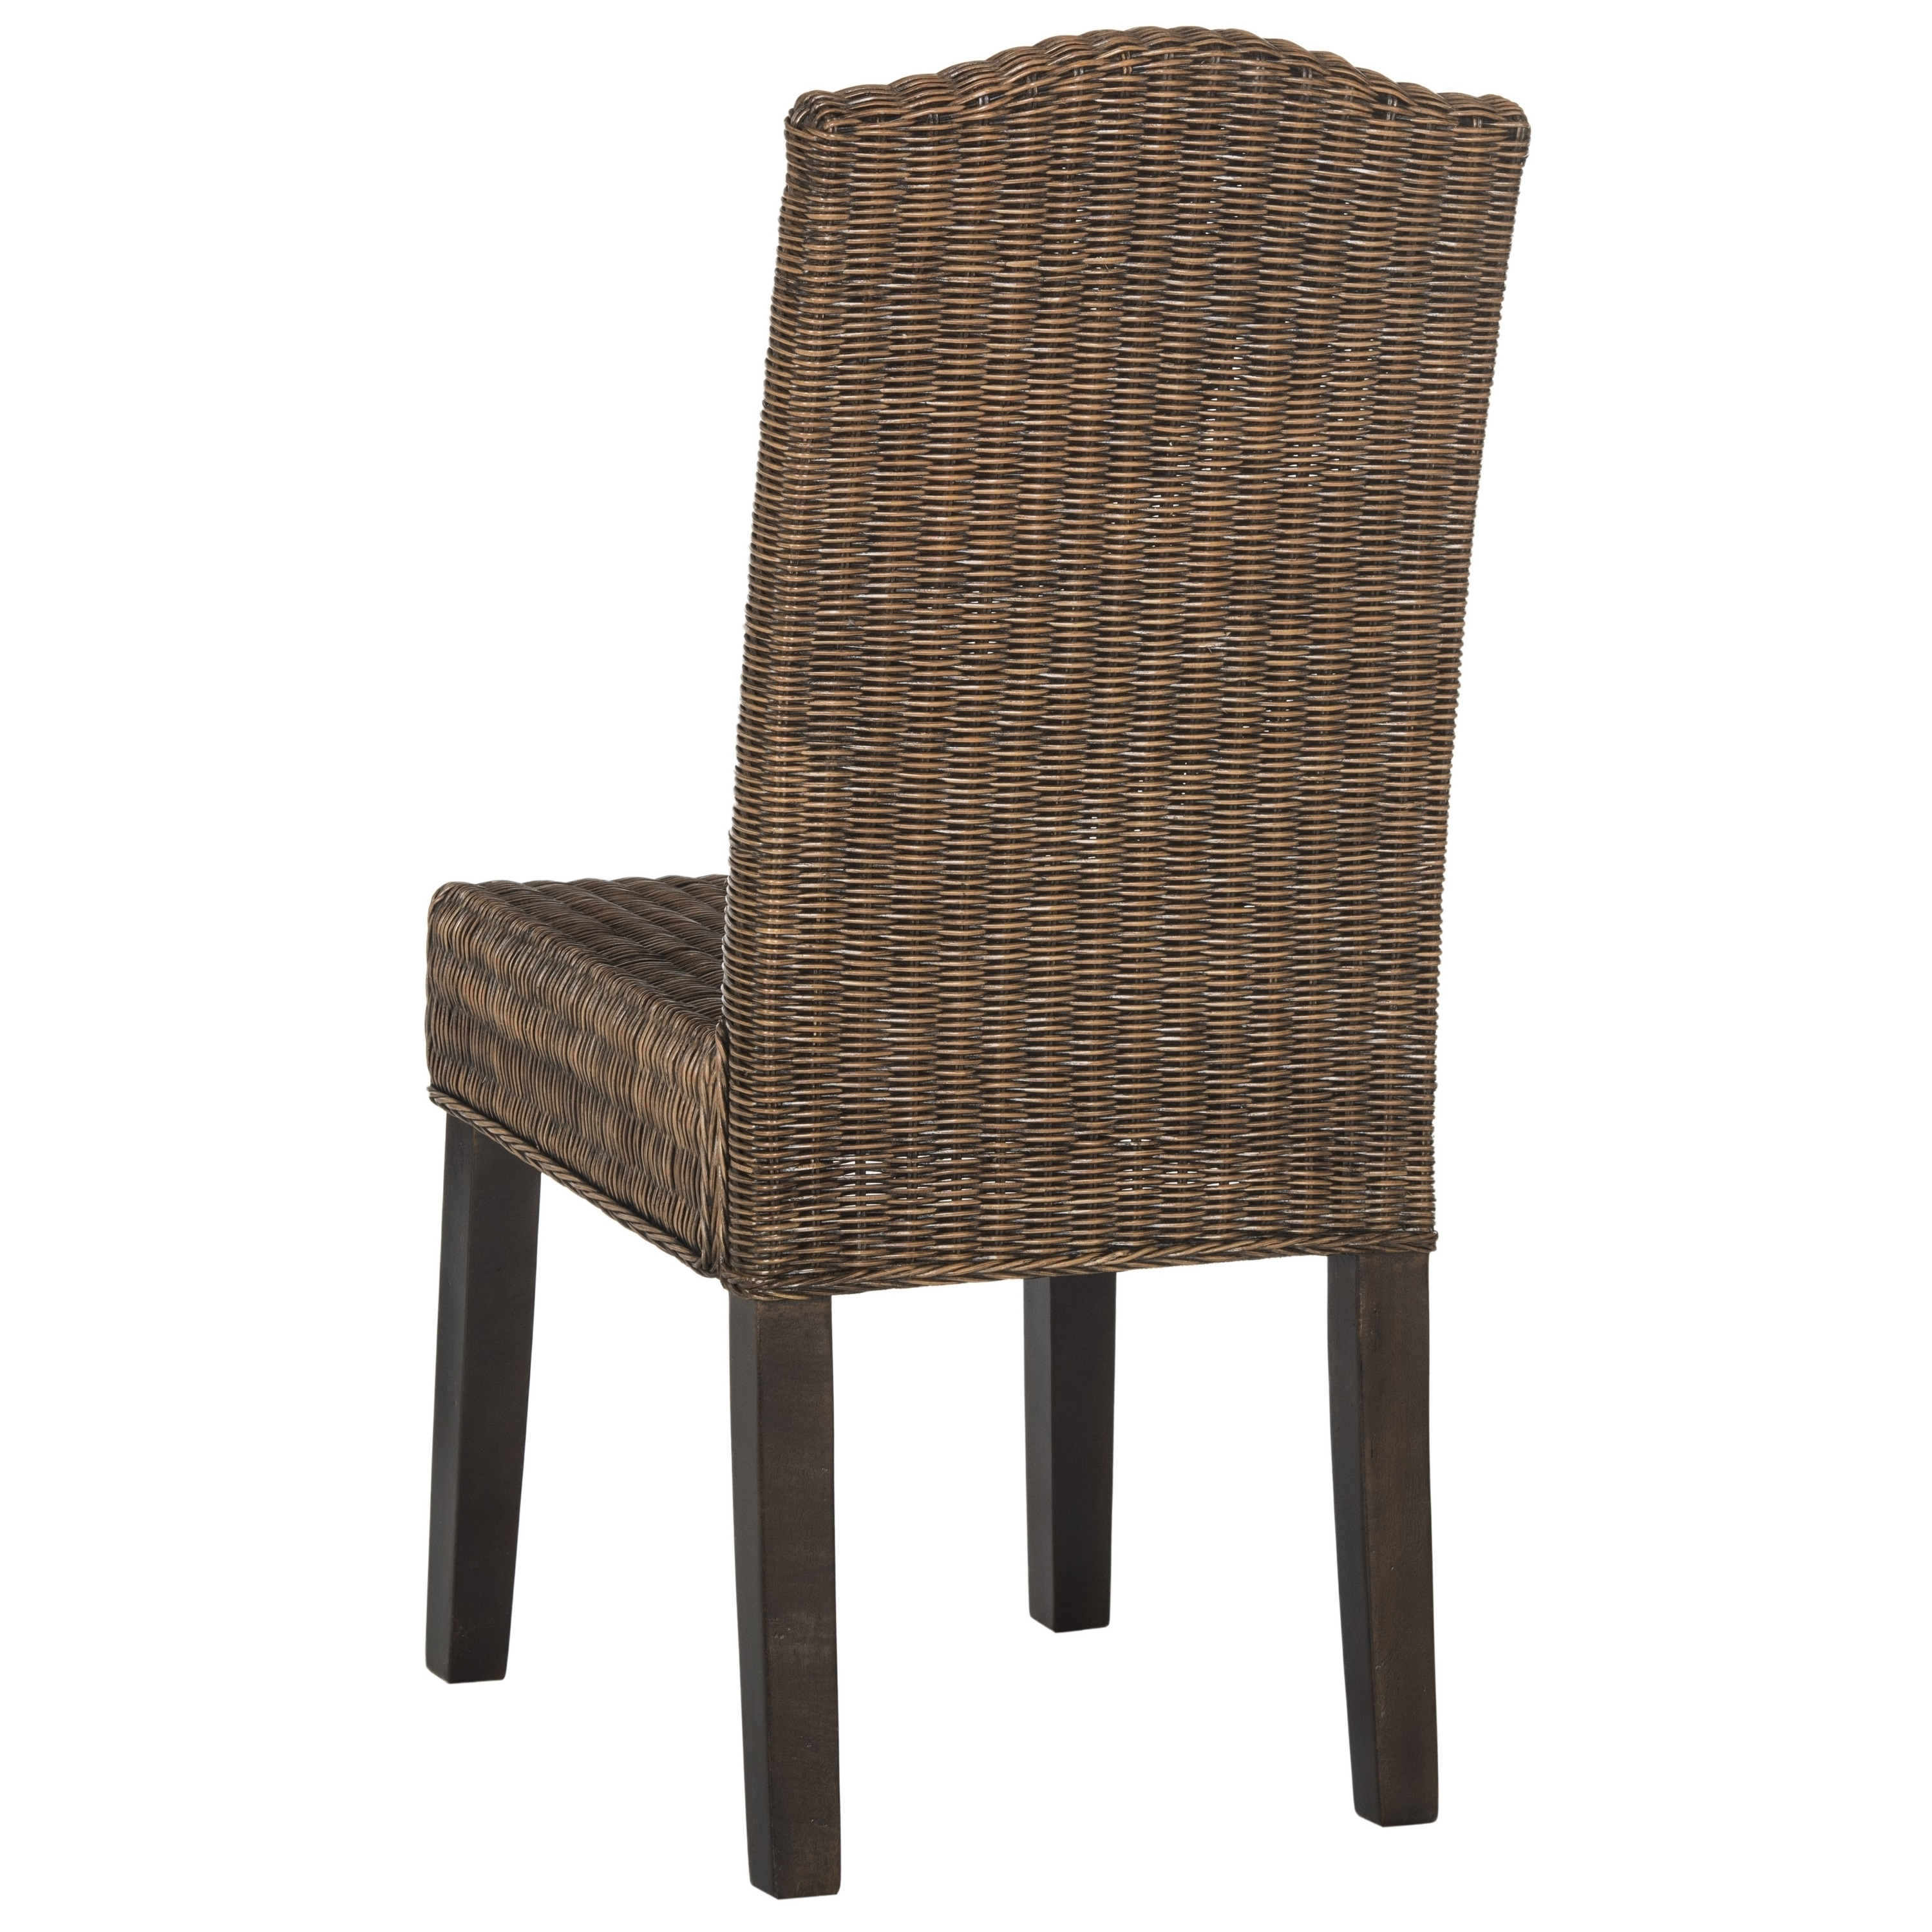 Safavieh rural woven dining odette brown multi wicker dining chairs set of 2